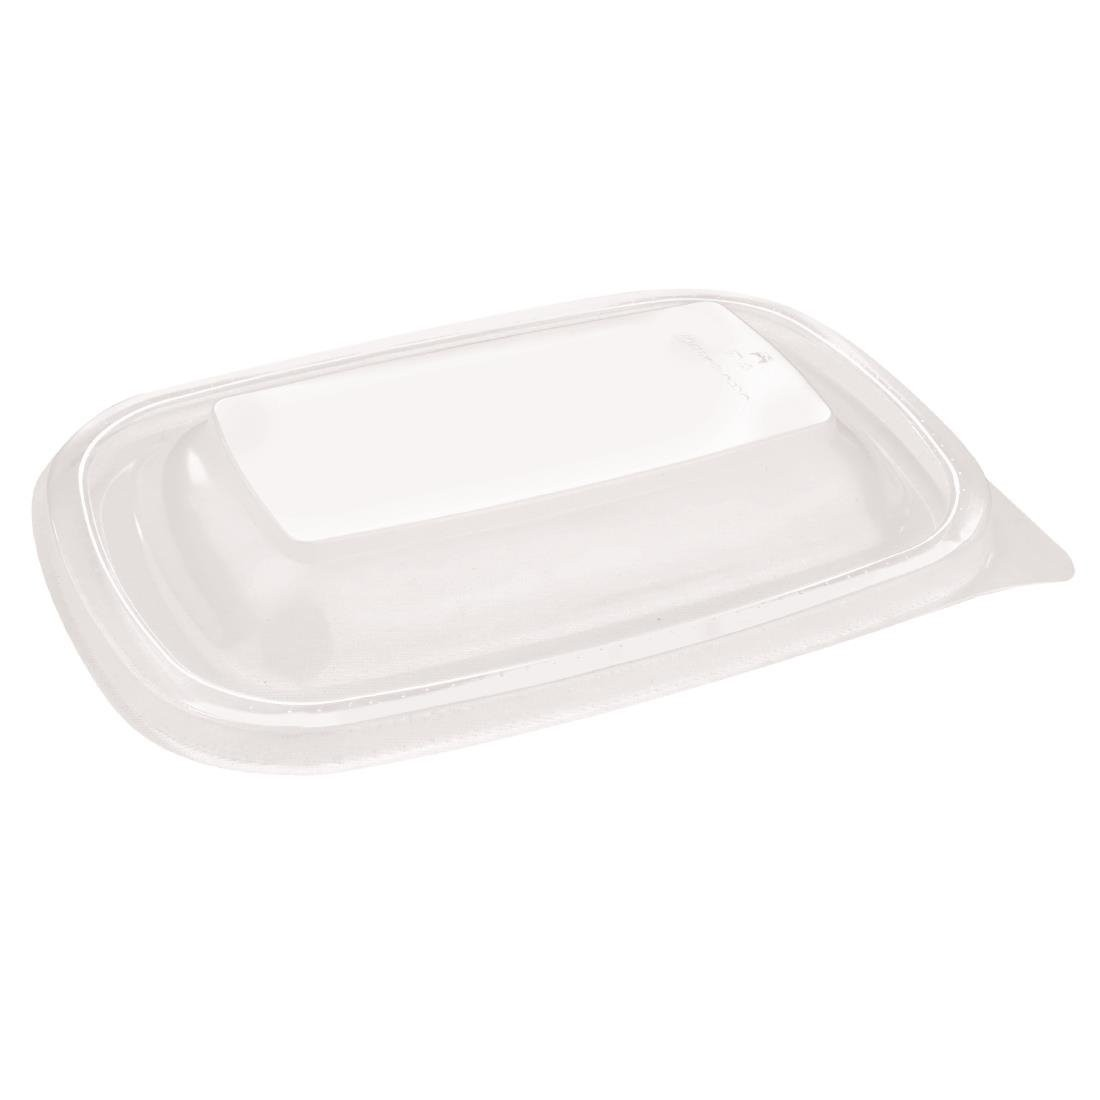 Lids for Sabert Fastpac Rectangular Containers